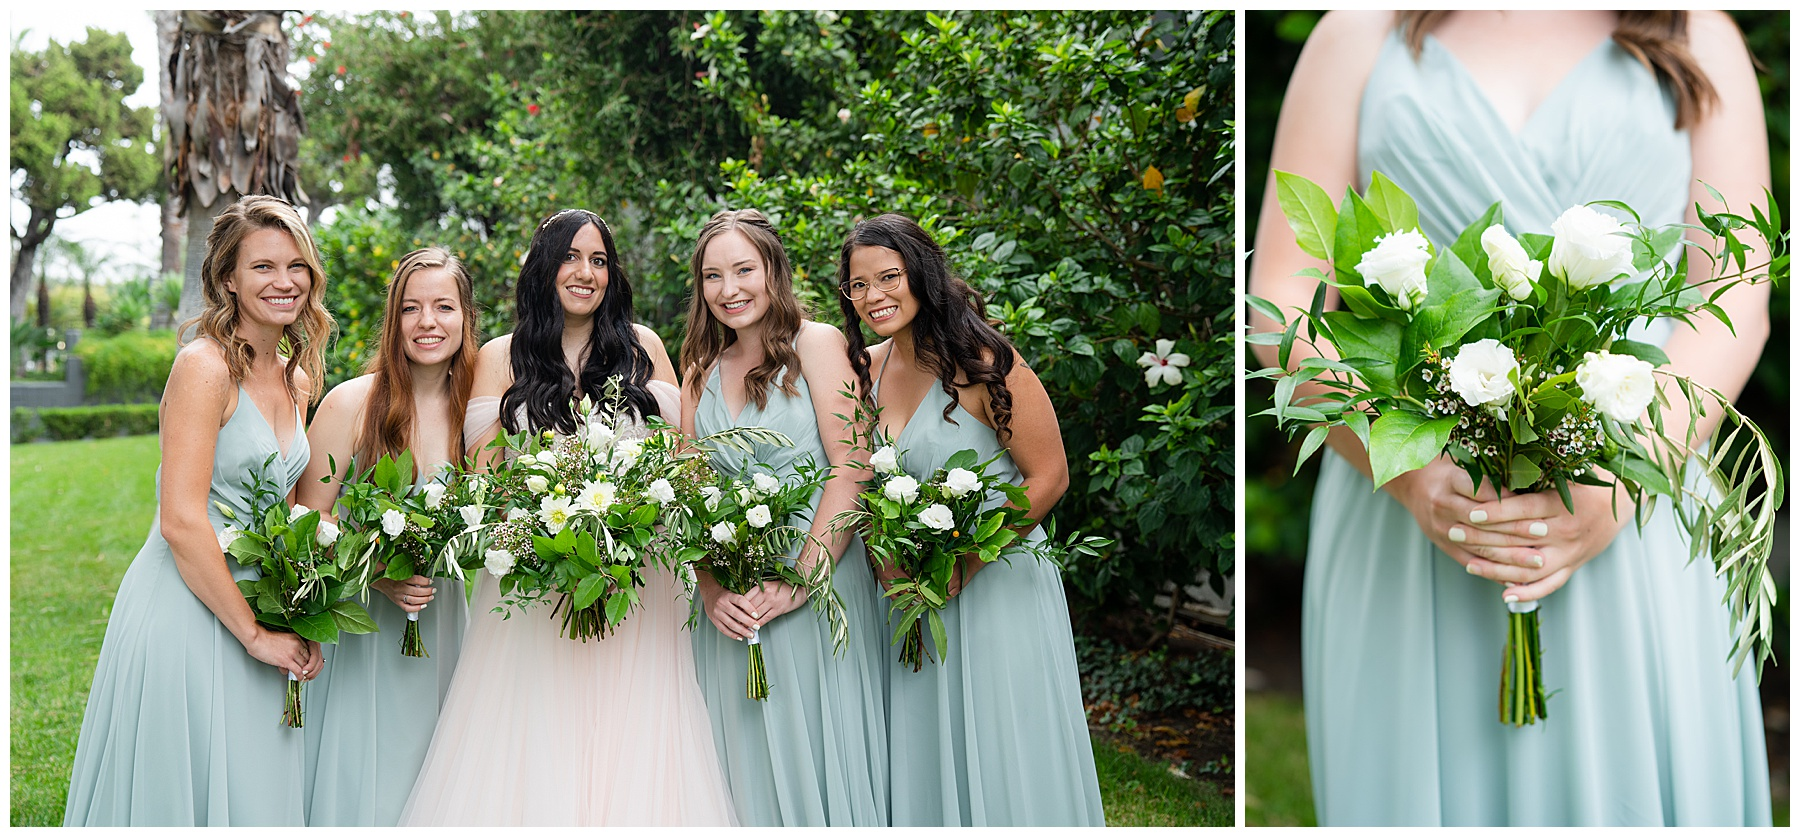 sky blue bridesmaids dresses and white and green bouquet